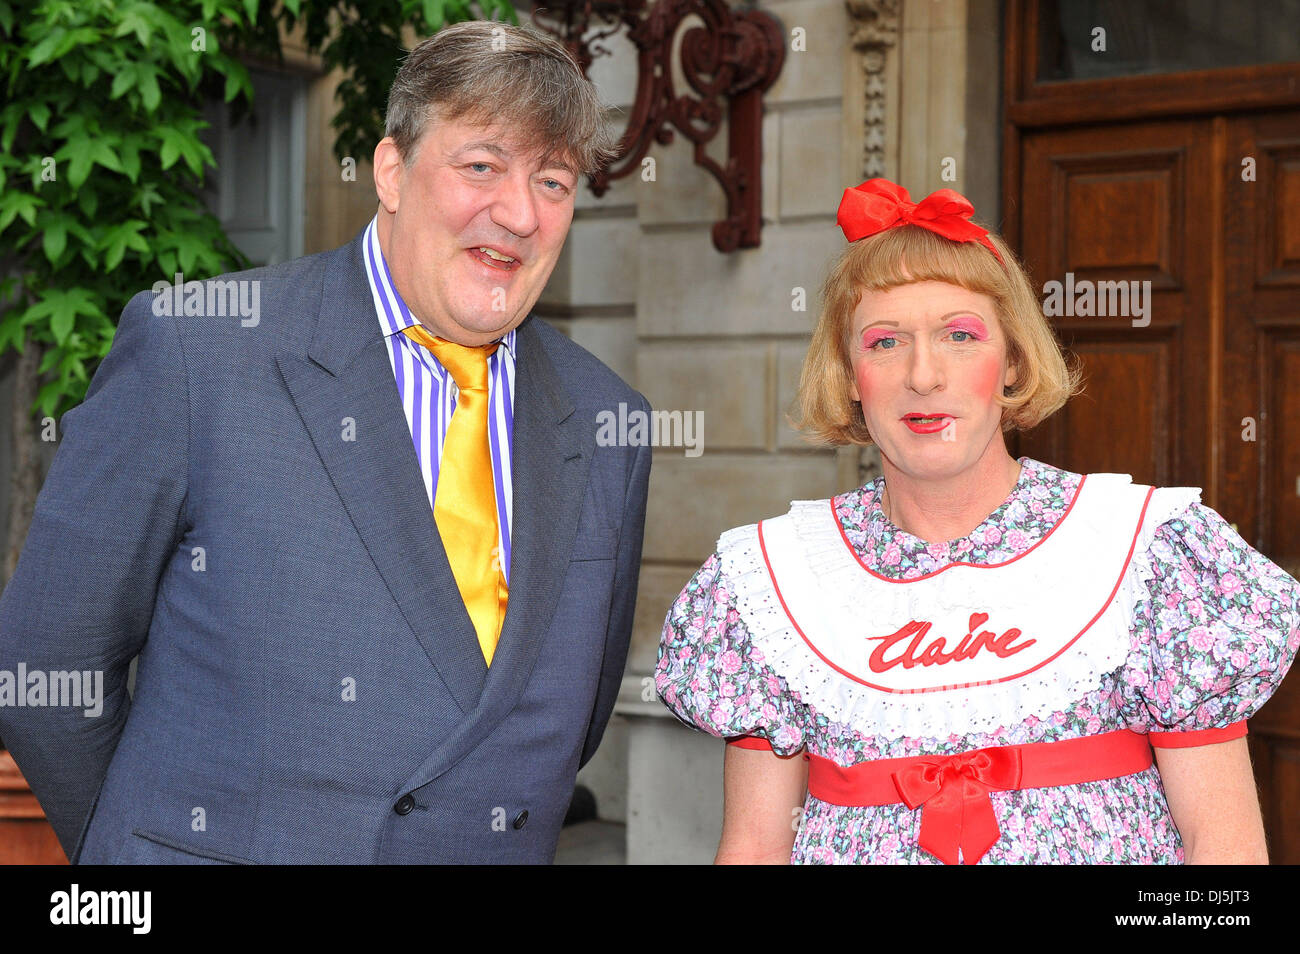 Stephen Fry and Grayson Perry The Royal Academy of Arts unveils plans for The Keeper's House – a major new building Stock Photo